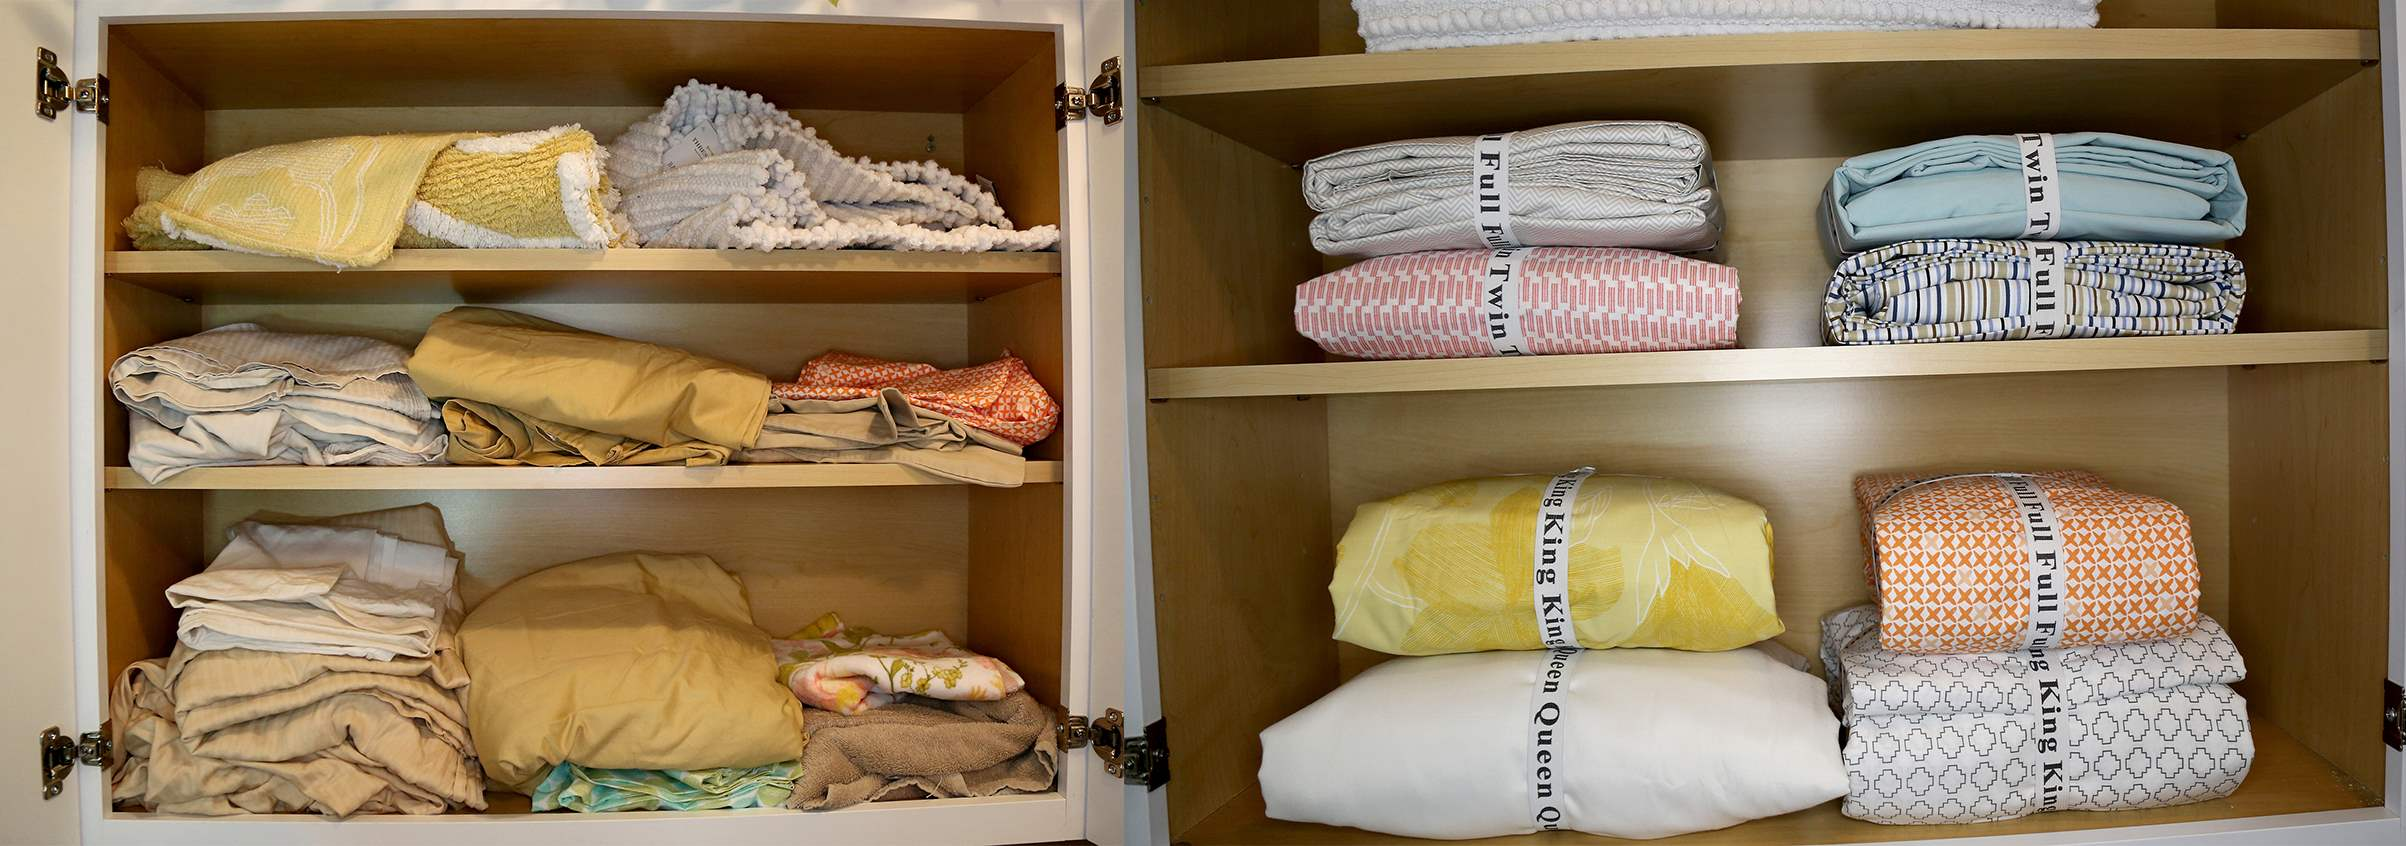 Sheets get mixed up and misplaced into disorganized piles. Sheet ID is the solution to organize your bed sheets and declutter your linen closets. Just fold, put the identifiable band around the sheet set, and ready for use next time with no mistakes!